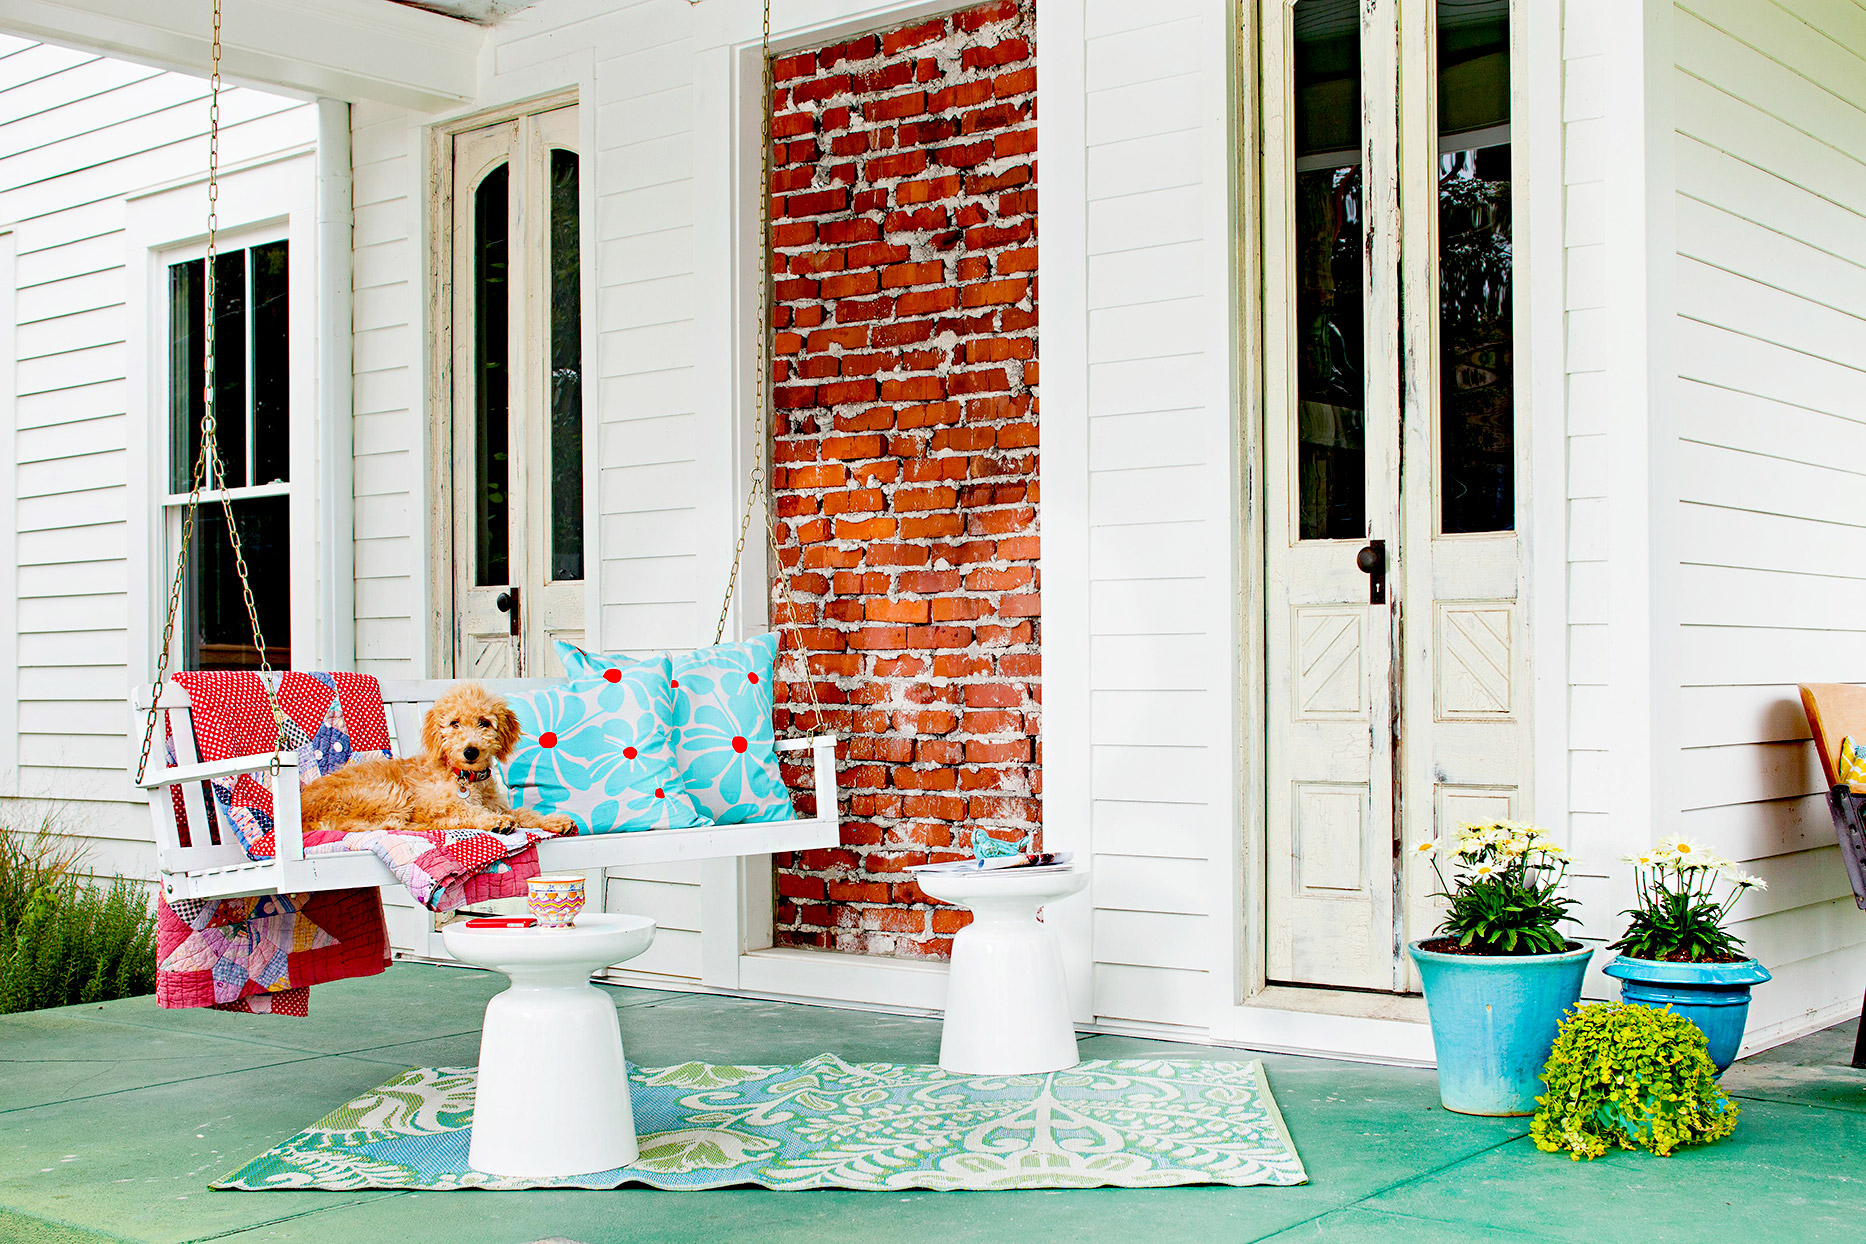 Front porch with porch swing, dog